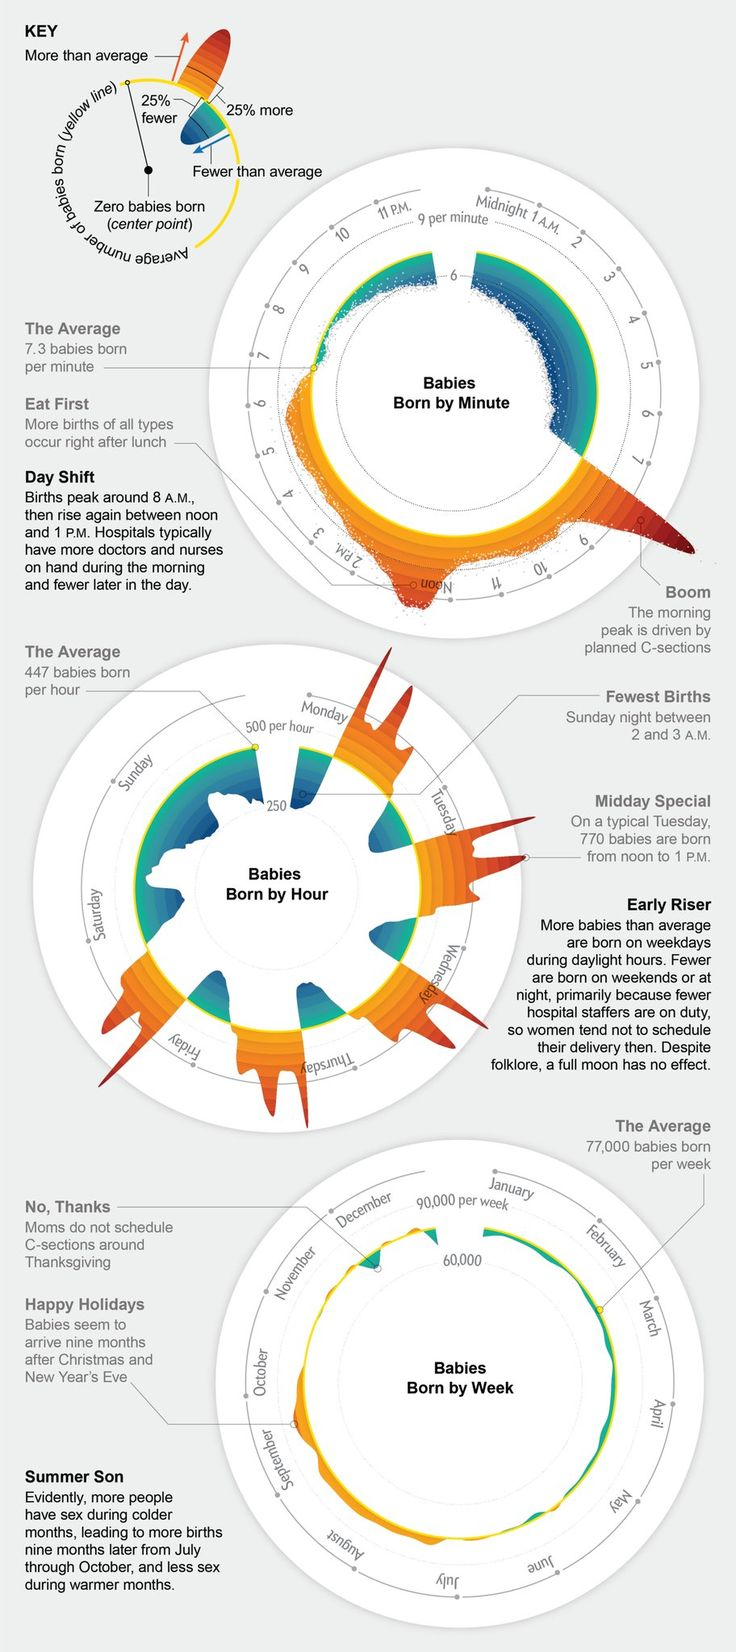 119 best visualization images on pinterest graphics info lw 7 good example data visualization of human birth patterns pooptronica